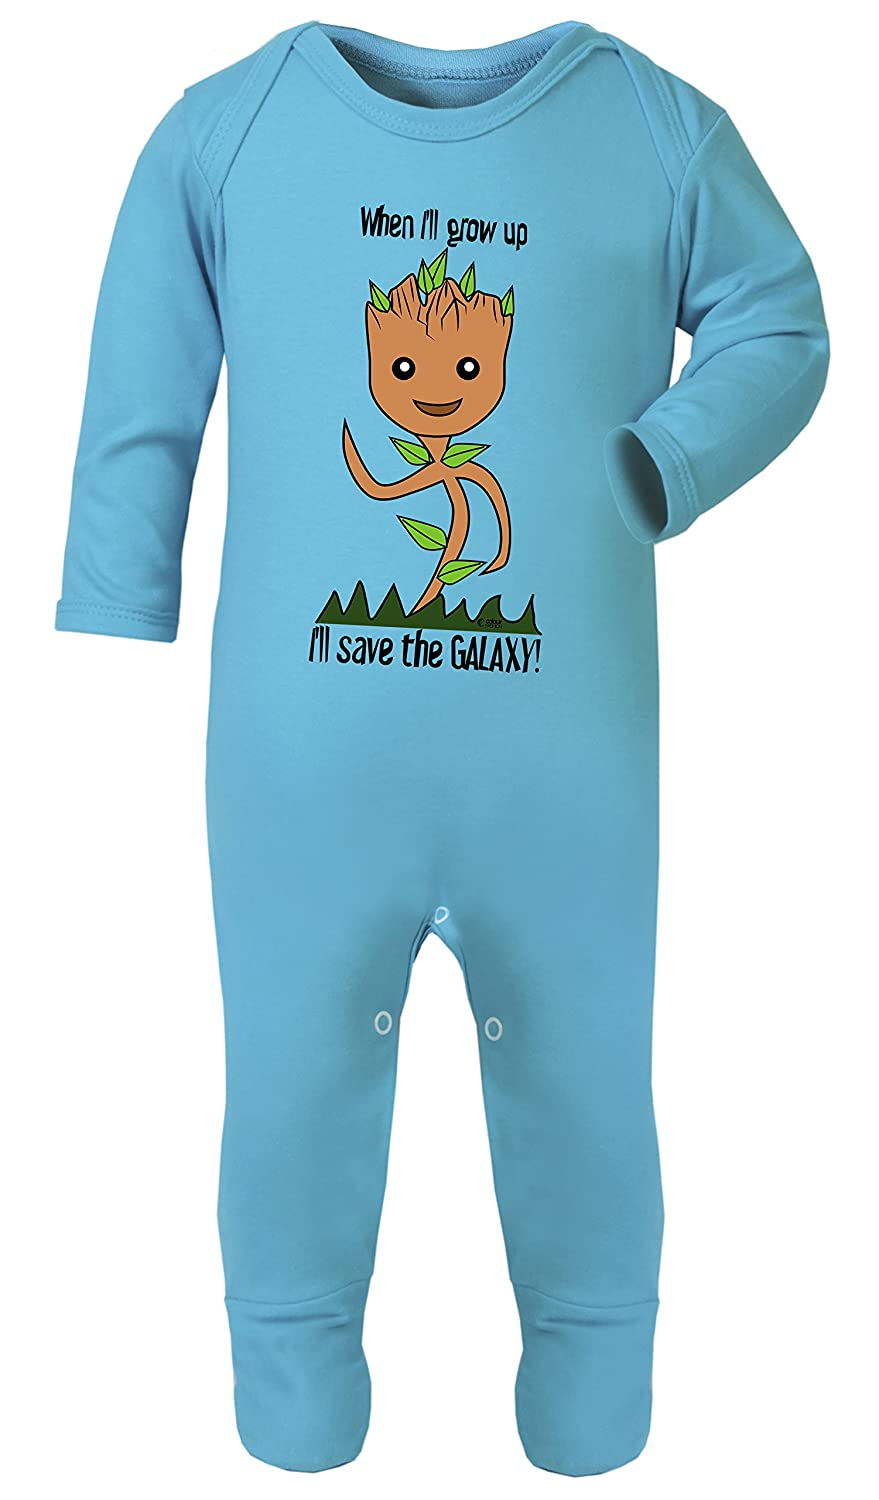 Baby Footed Pajamas Hypoallergenic Certified Colour Fashion Baby Groot Ill Save The Galaxy